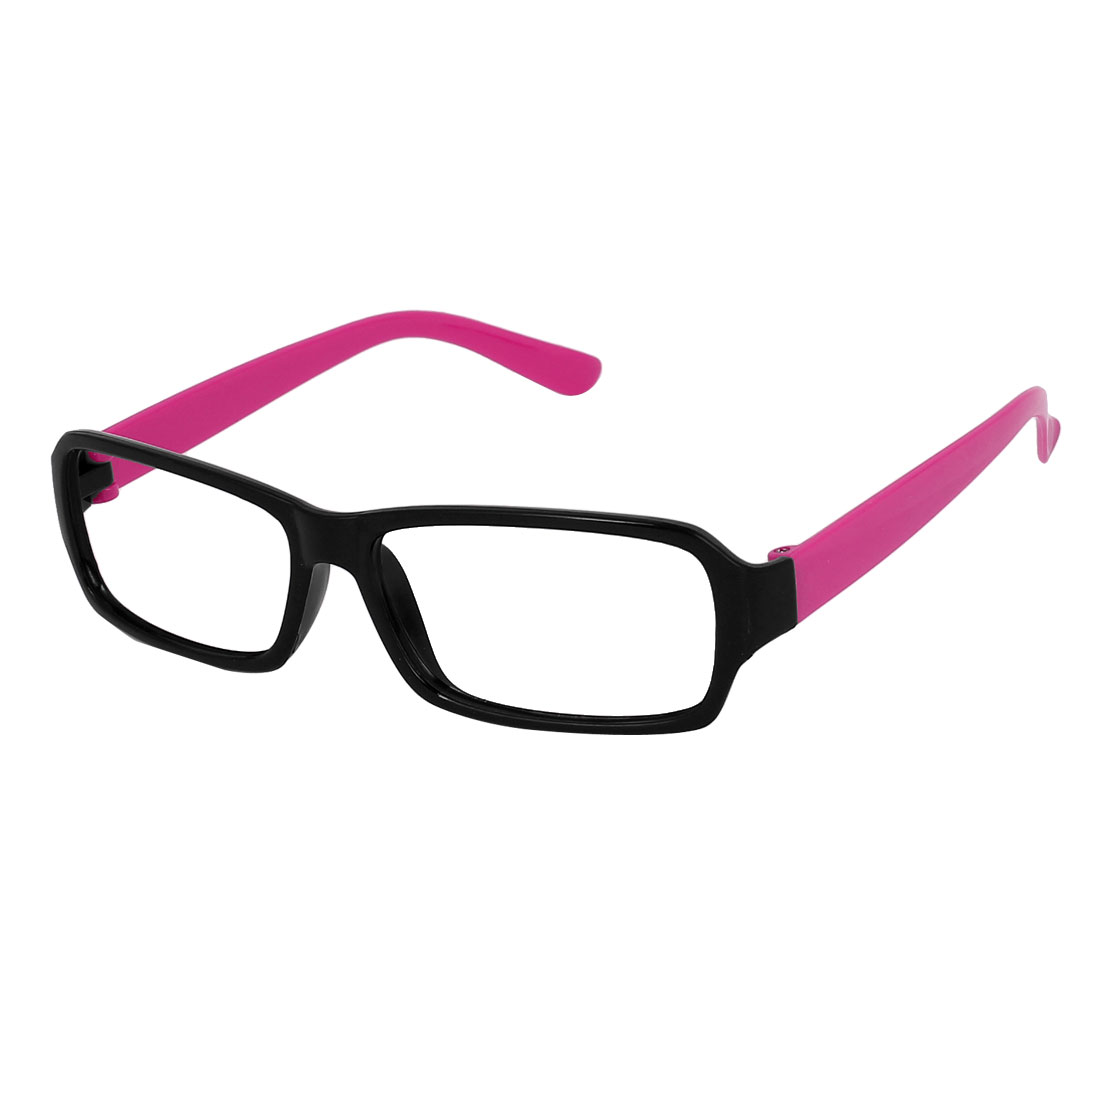 Women Black Full Rim Fuchsia Arms Plastic Rectangular No Lens Glasses Frame